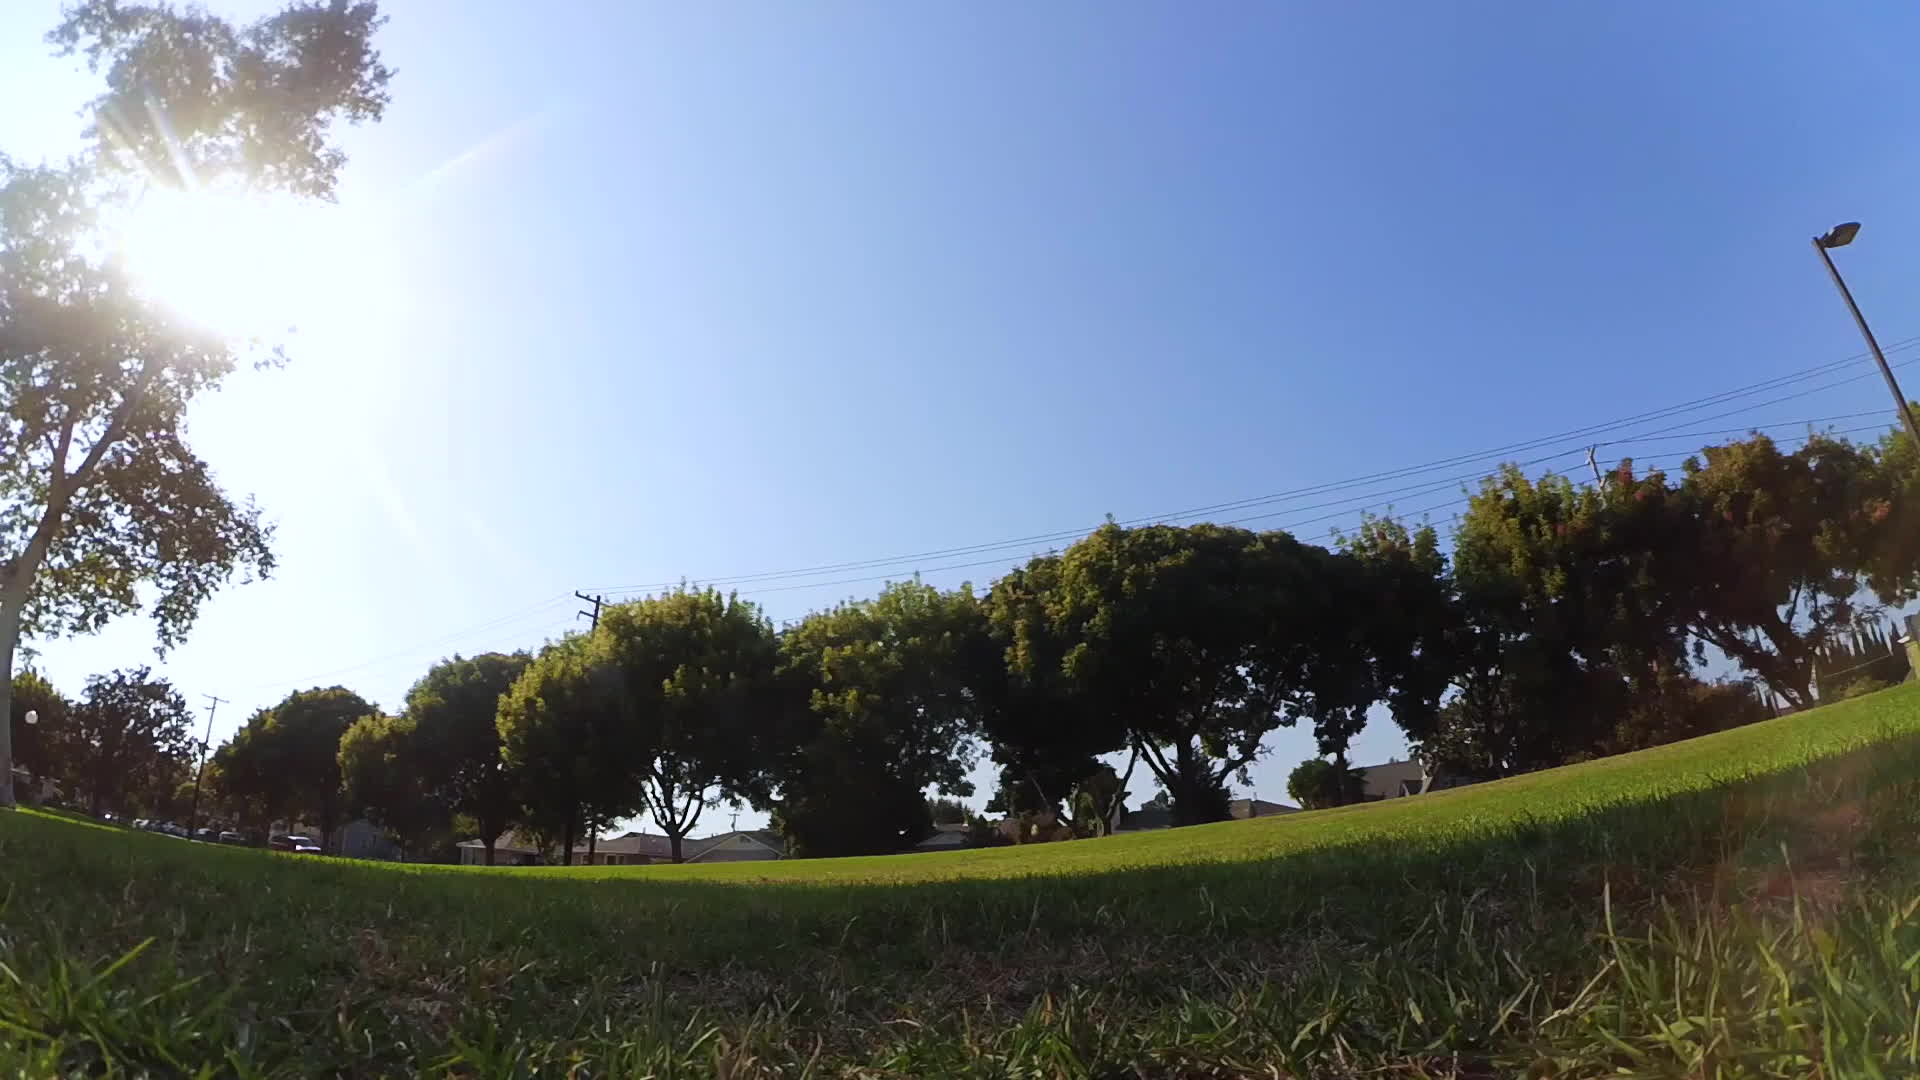 multicopter, Yaw spin GIFs